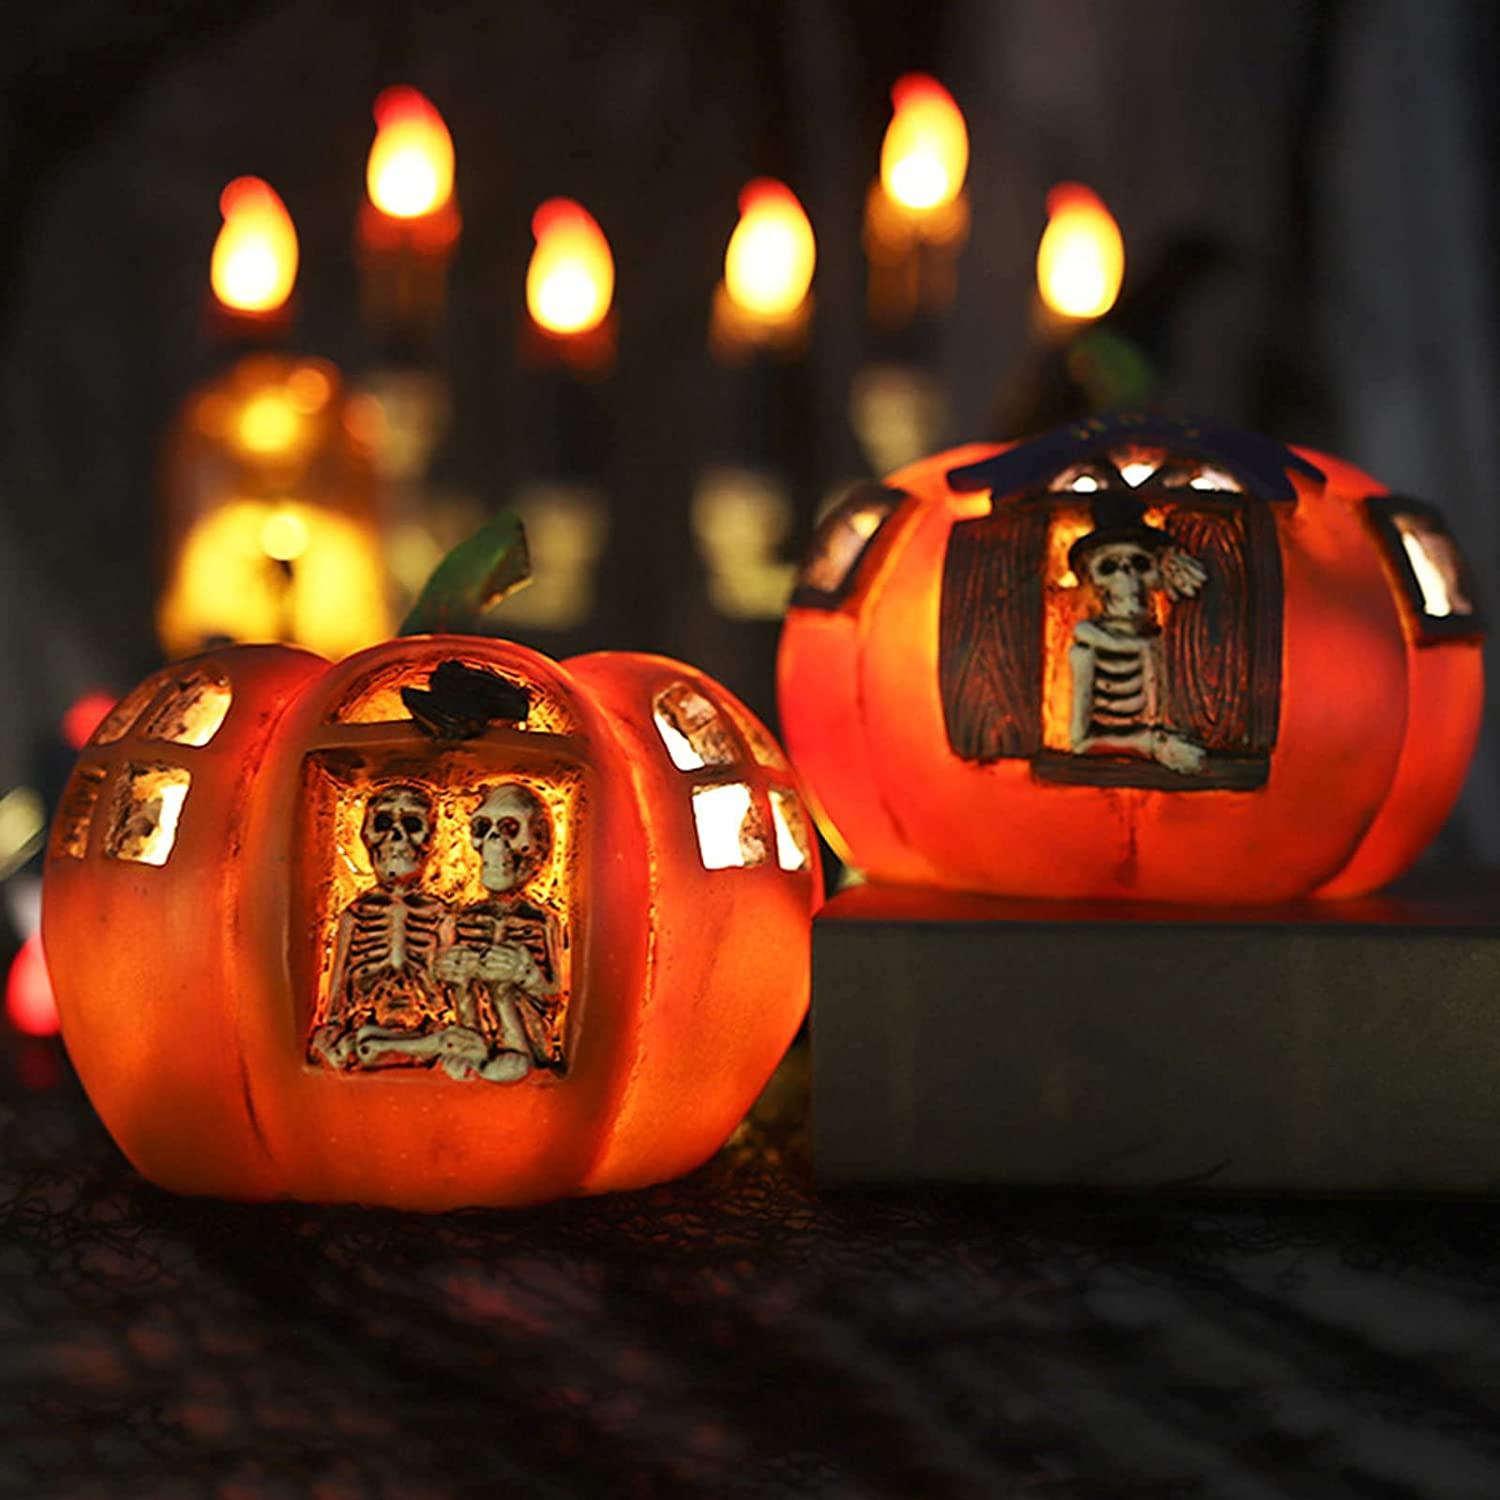 FKDG 2pcs Halloween Pumpkin Limited price Shaped Light Night National products Lamp Bedr